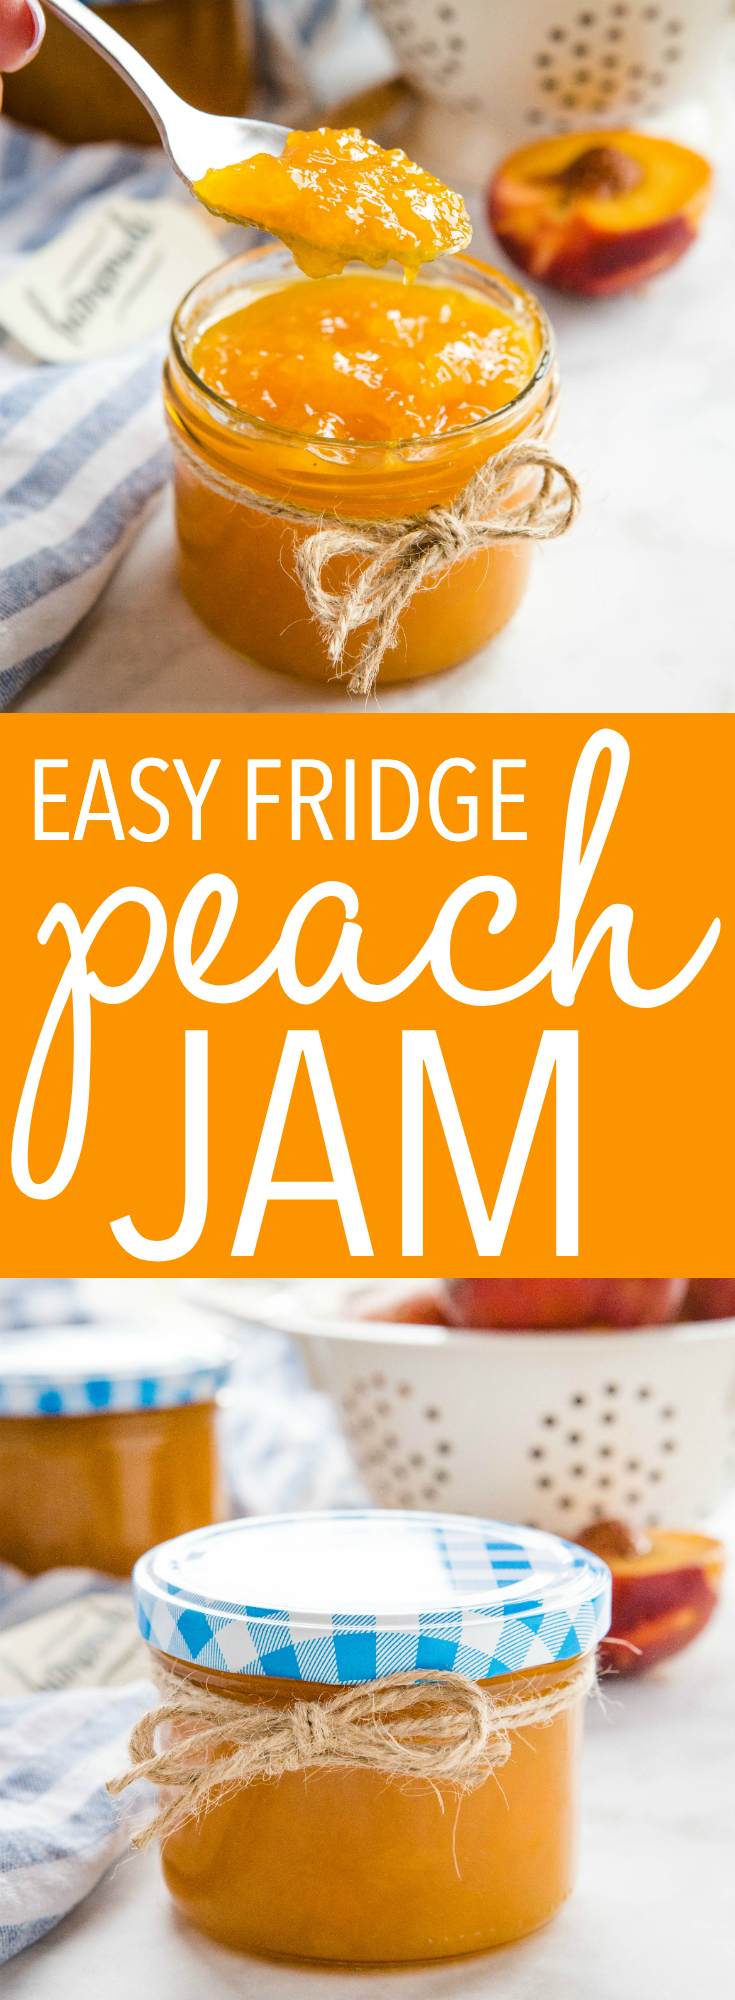 This Easy Peach Freezer Jam is a simple and easy homemade jam recipe made with fresh peaches! Only 3 ingredients, no pectin, and no canning required! Recipe from thebusybaker.ca! #freezerjam #peaches #fruit #canning #easyjamrecipe #jam #homesteading #homemaking #homemade via @busybakerblog